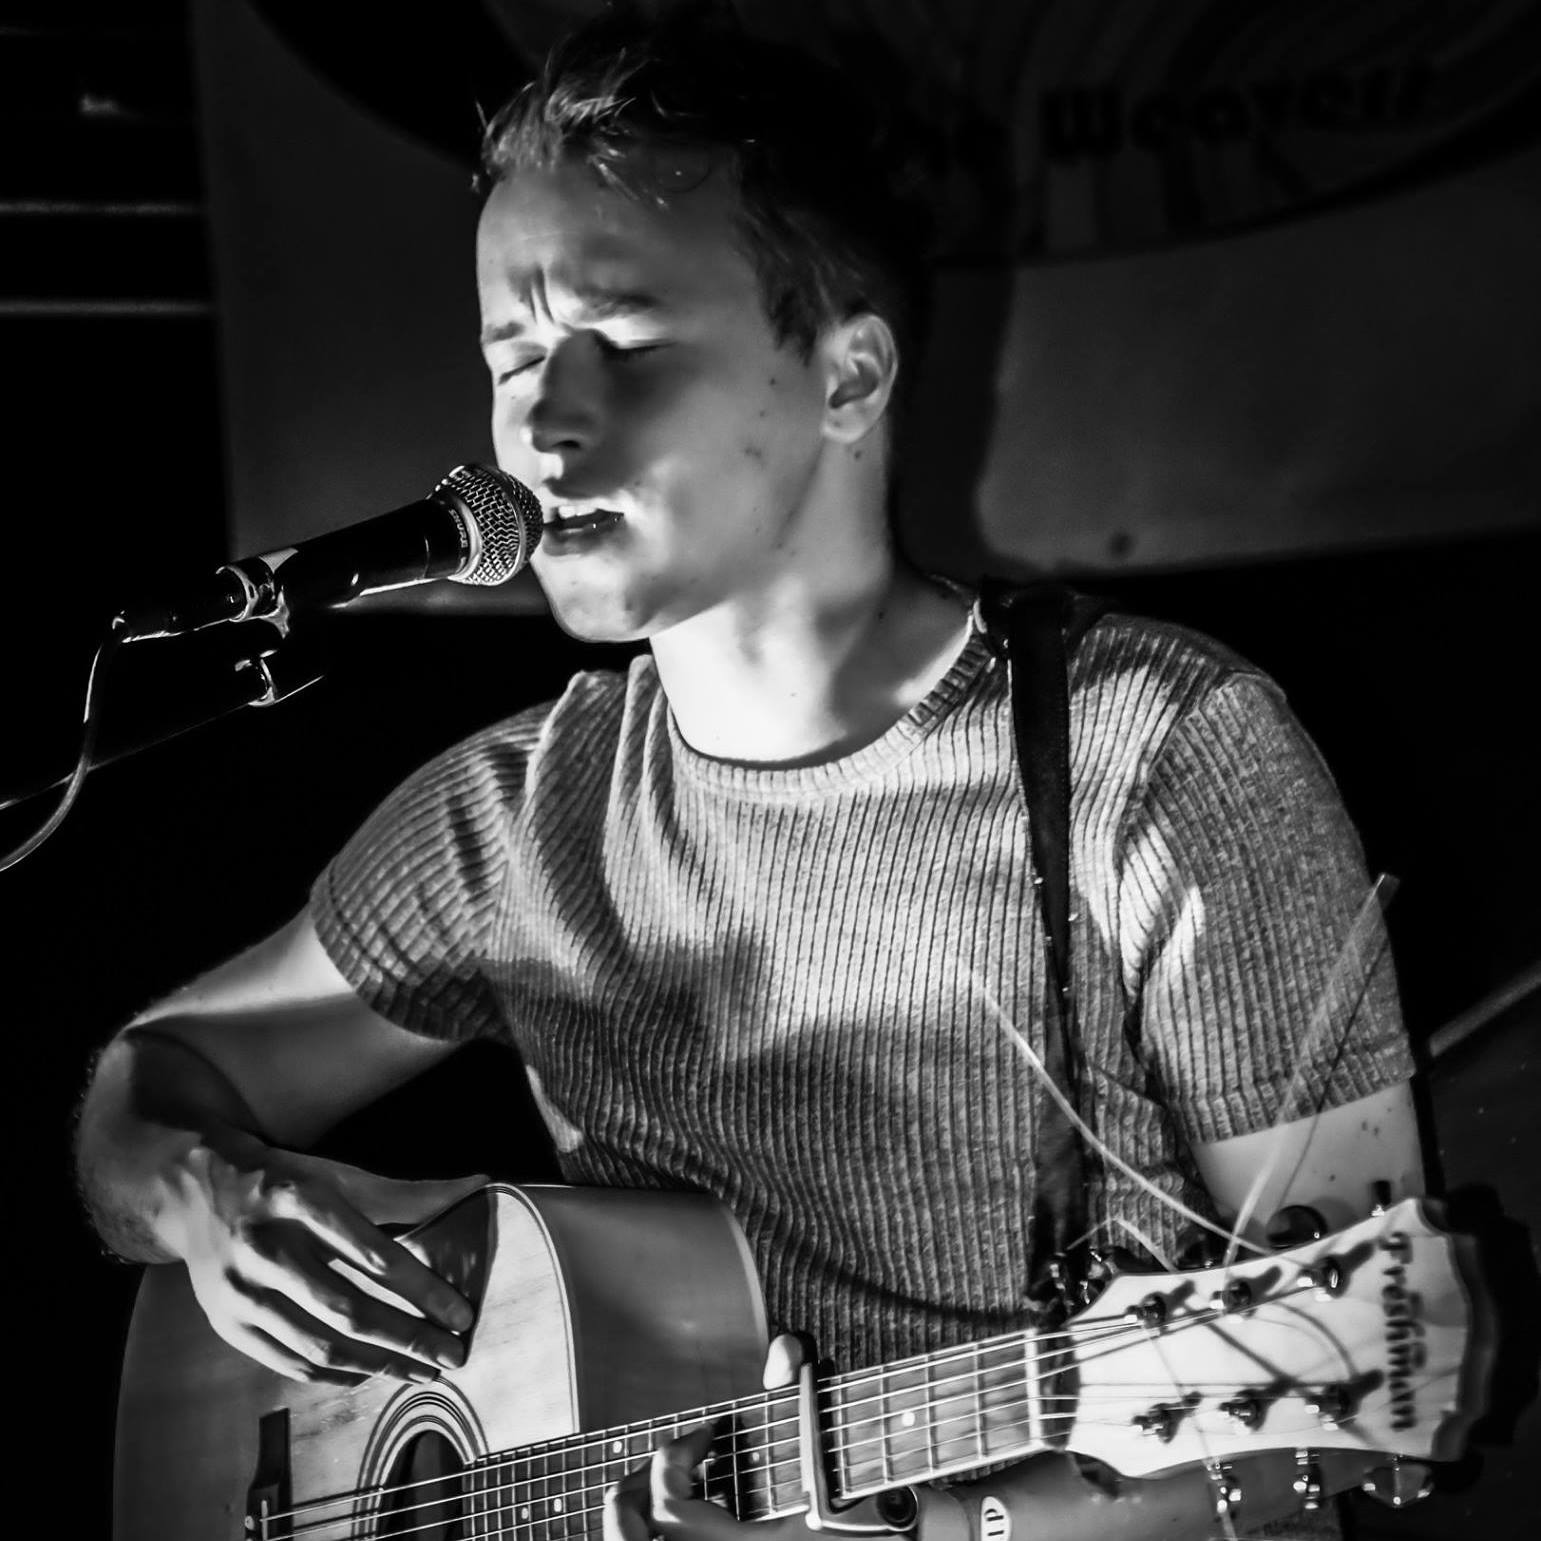 Guest blog: Paisley is where my musical journey began